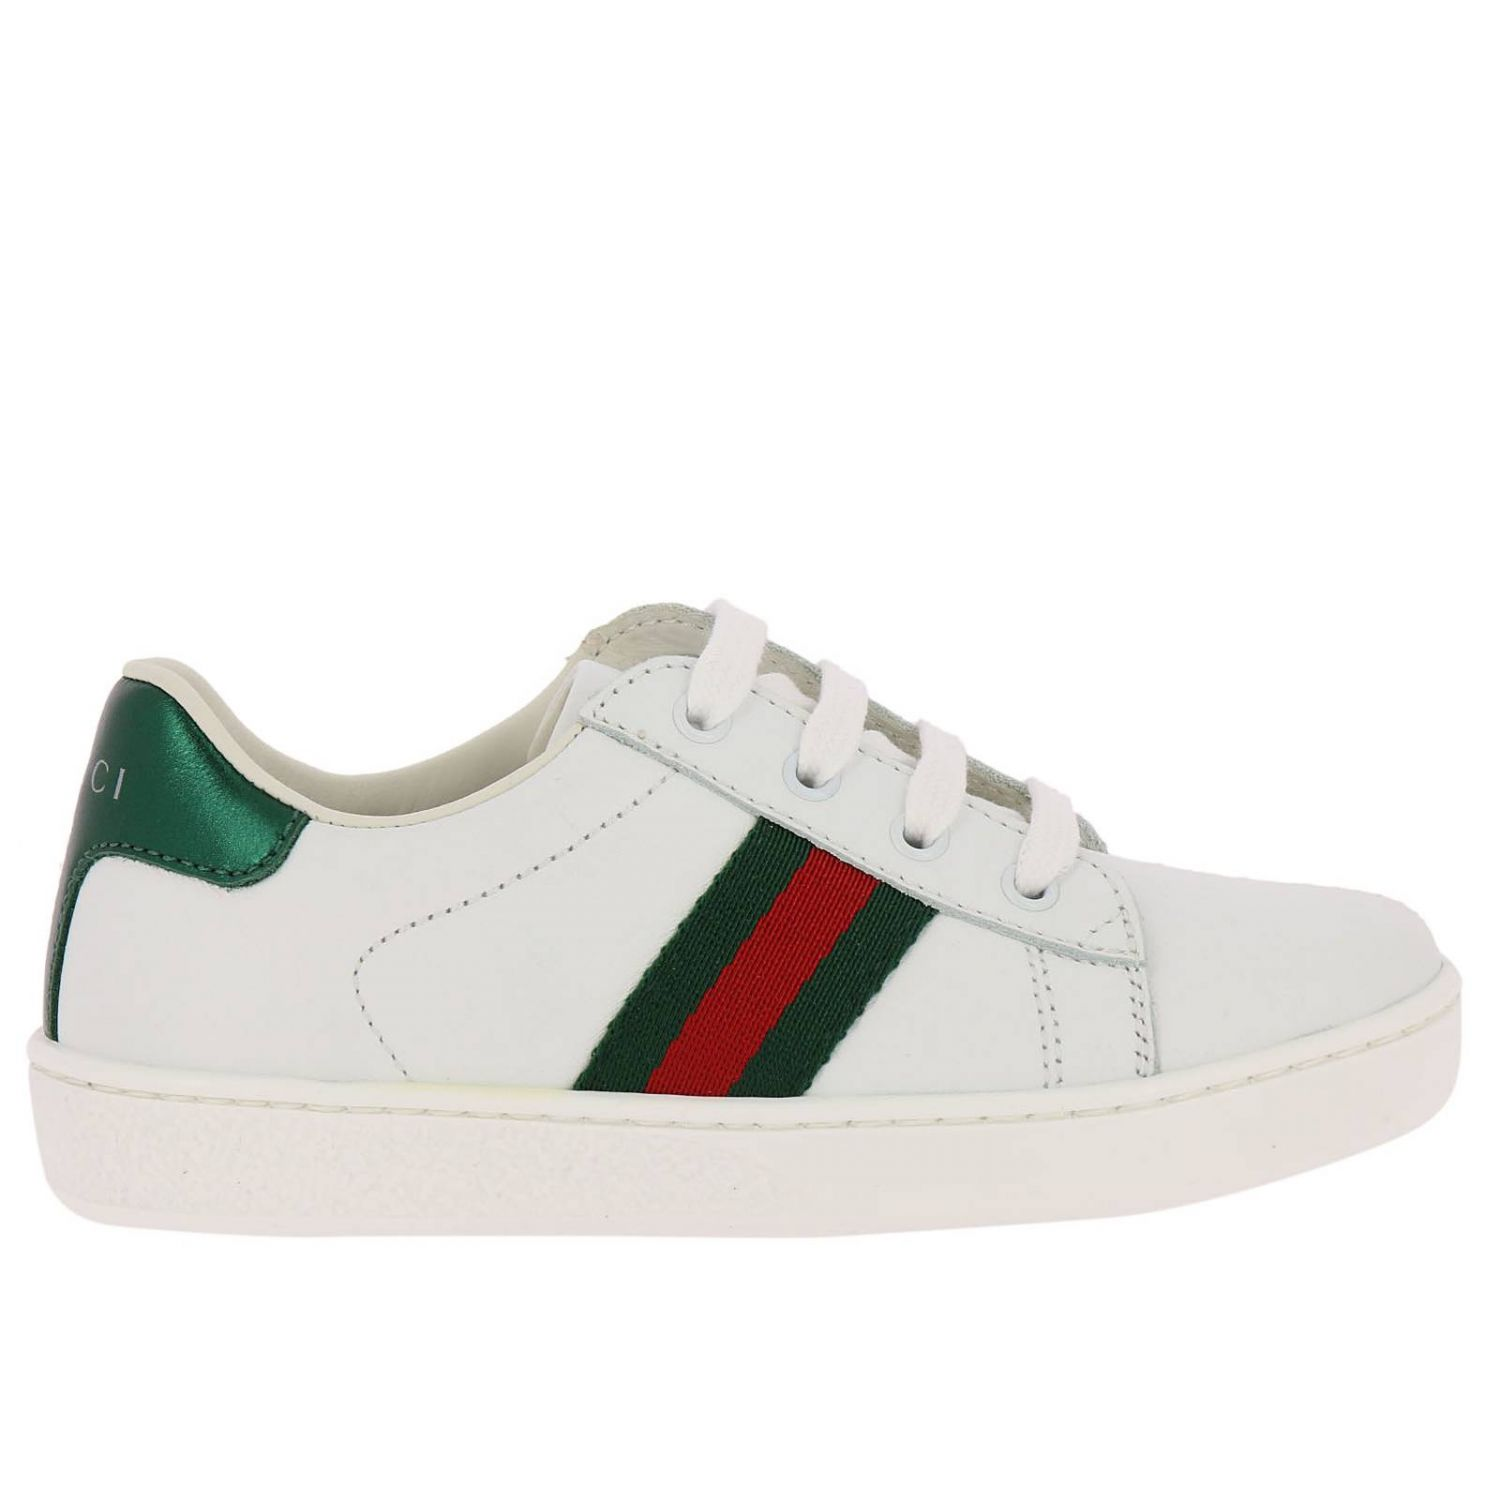 Shoes Classic New Ace Sneakers In Genuine Smooth Leather With Web Gucci Bands 8401165